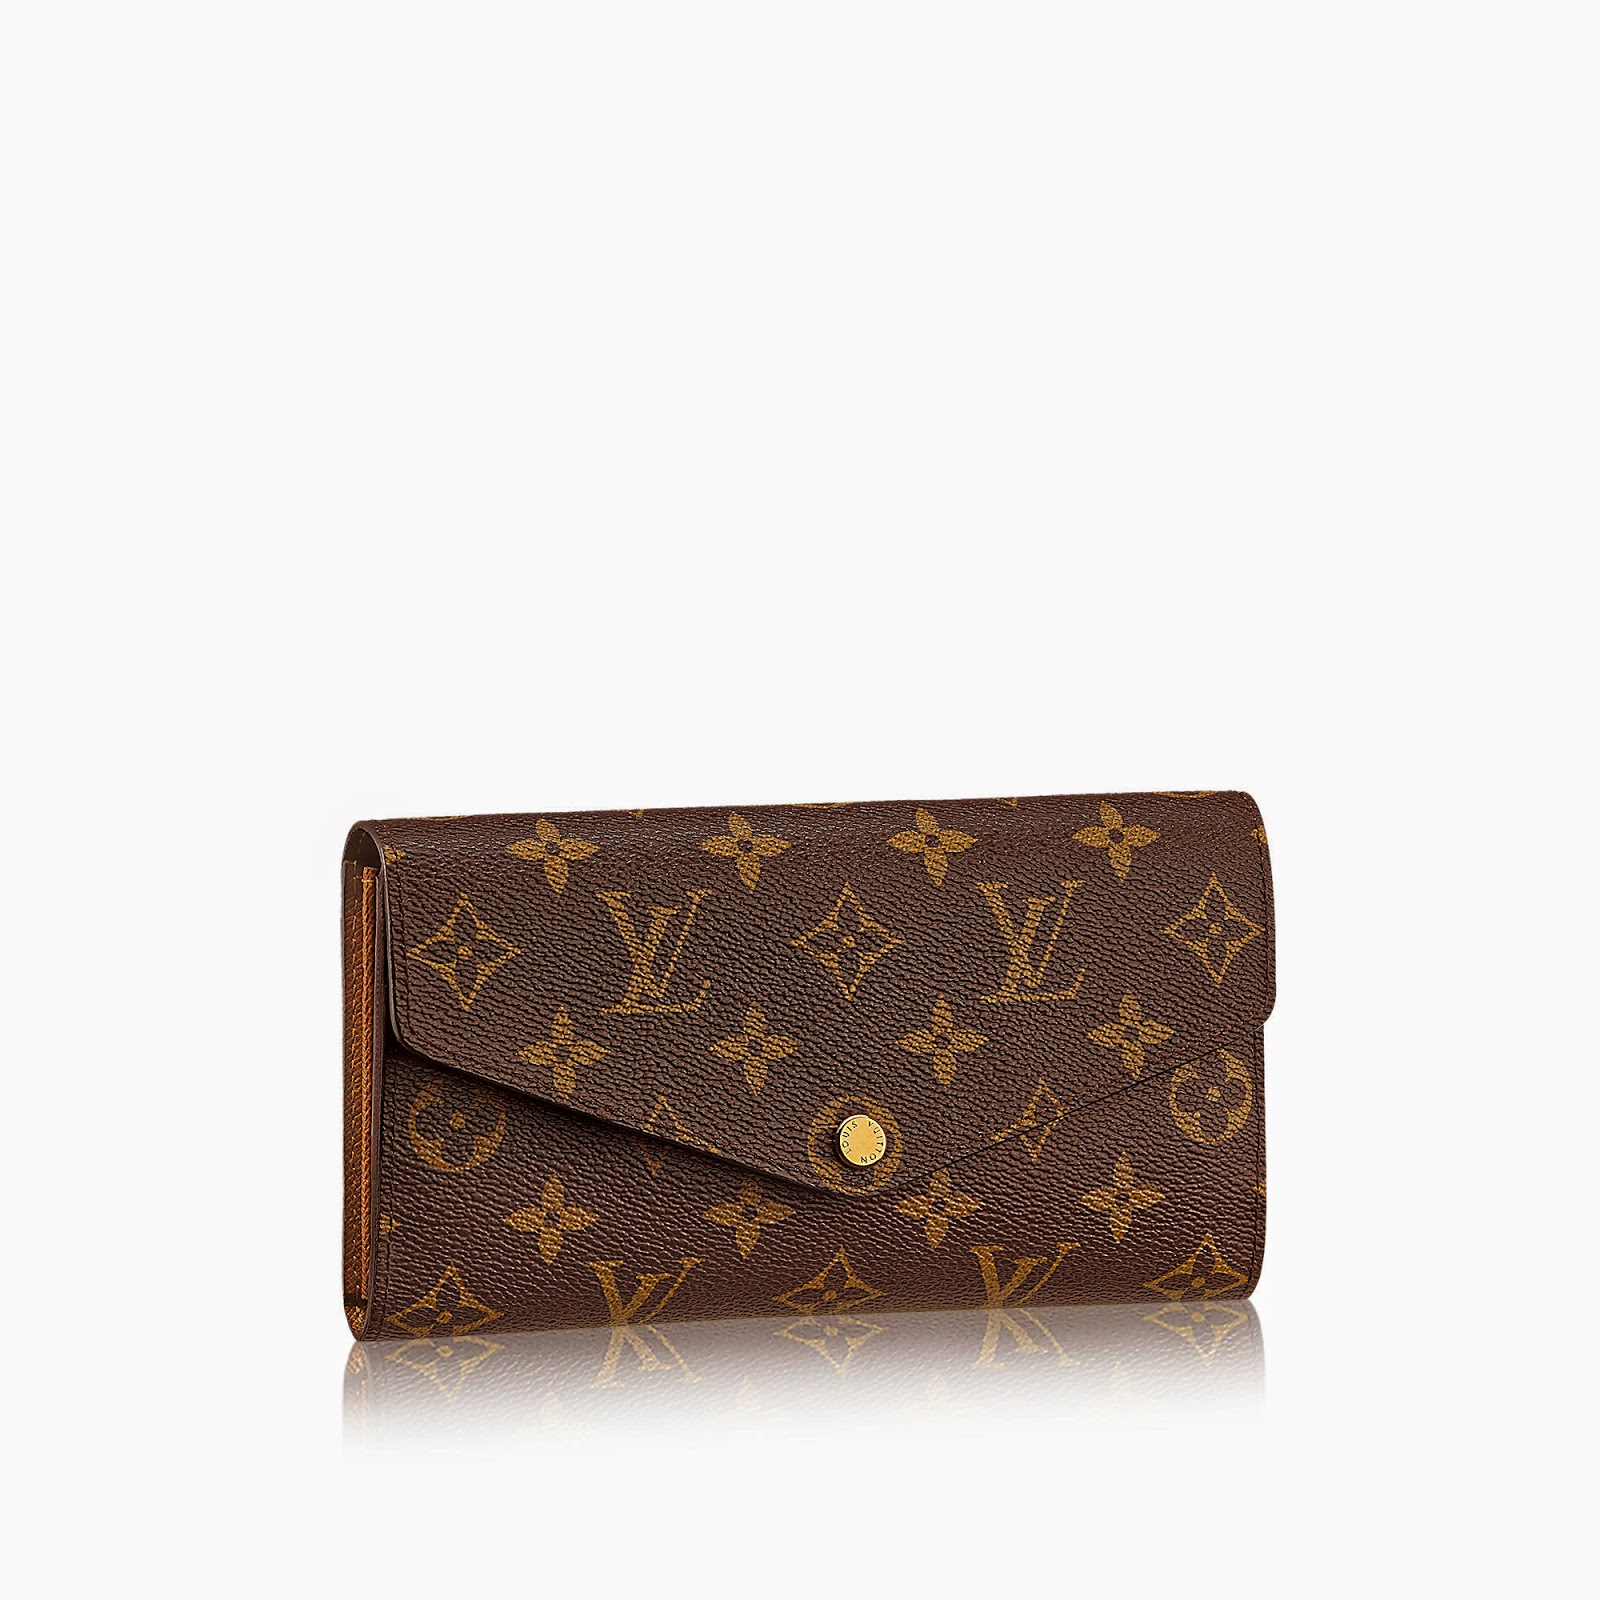 A Brief History of LOUIS VUITTON